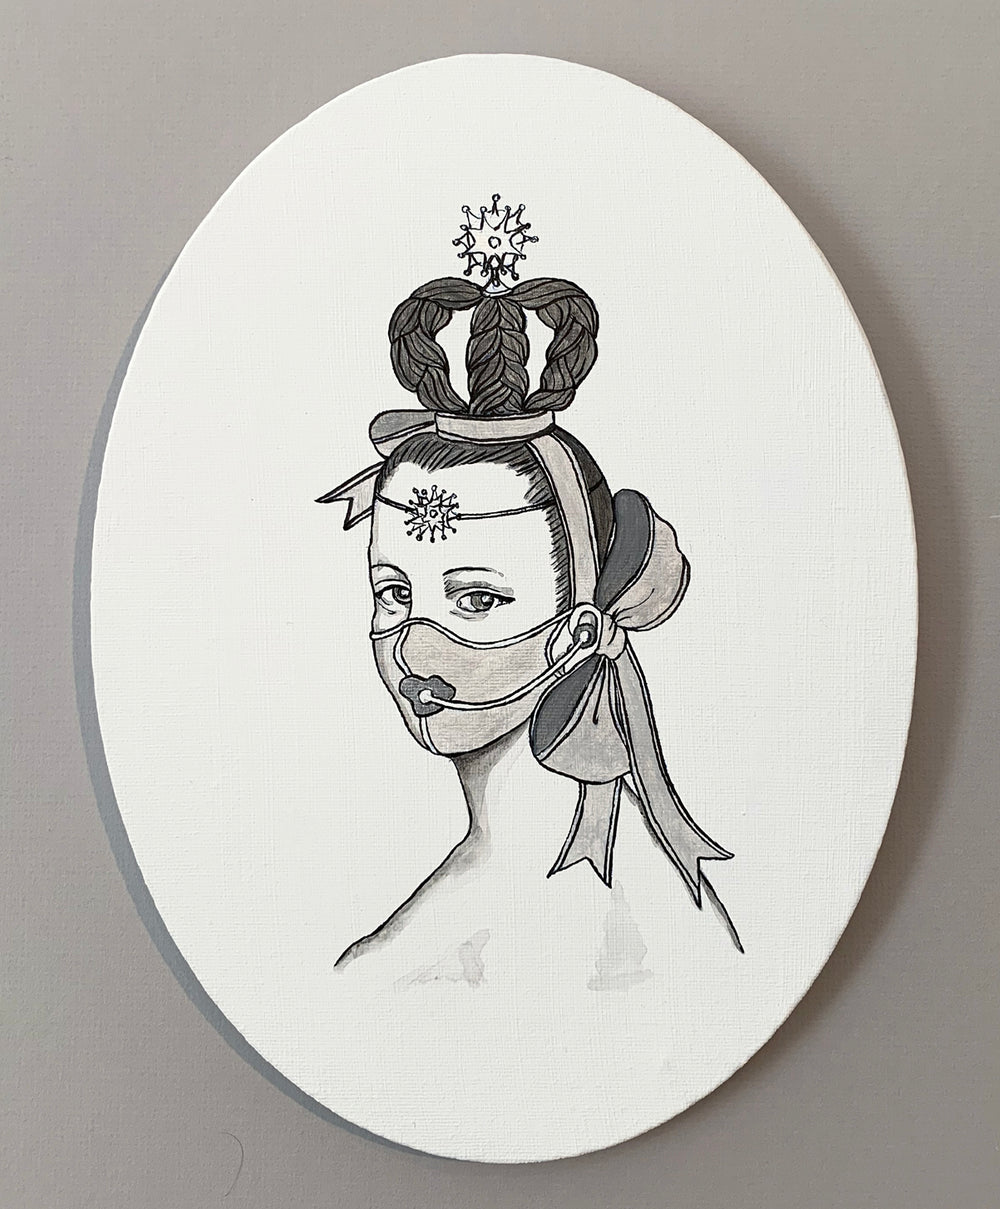 Drawing of a women wearing a face mask with a bow and her braids form a crown on the top of her head.